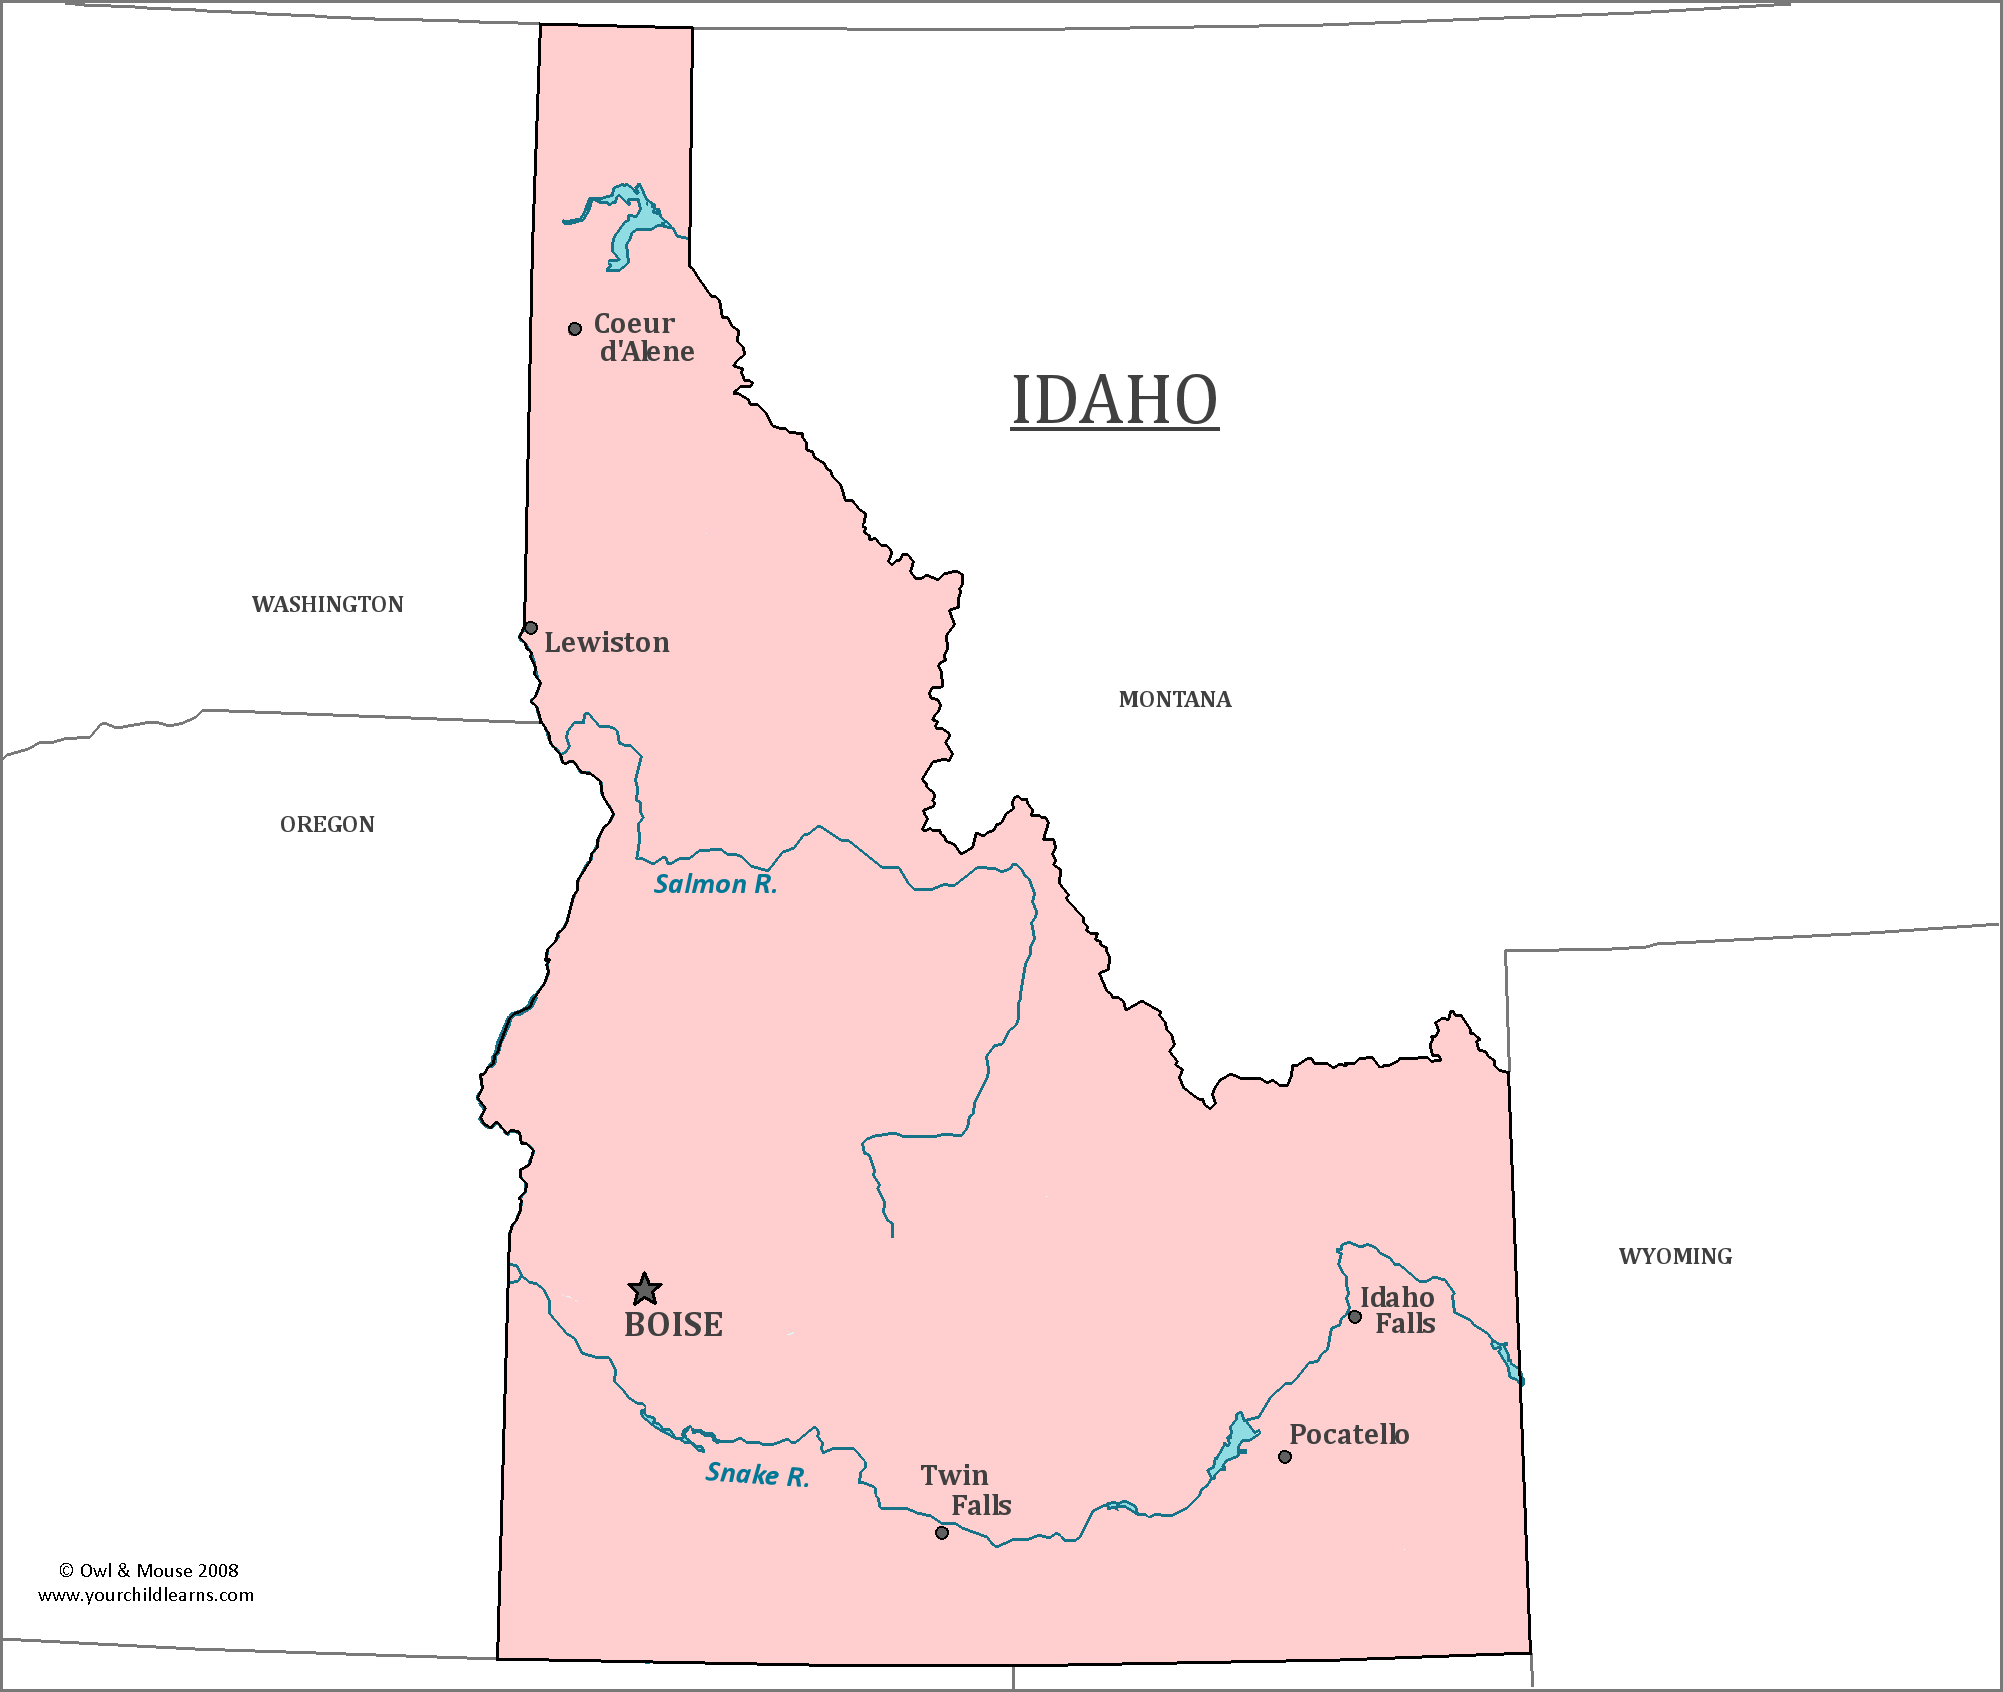 Idaho State Map - Map of Idaho and Information About the State